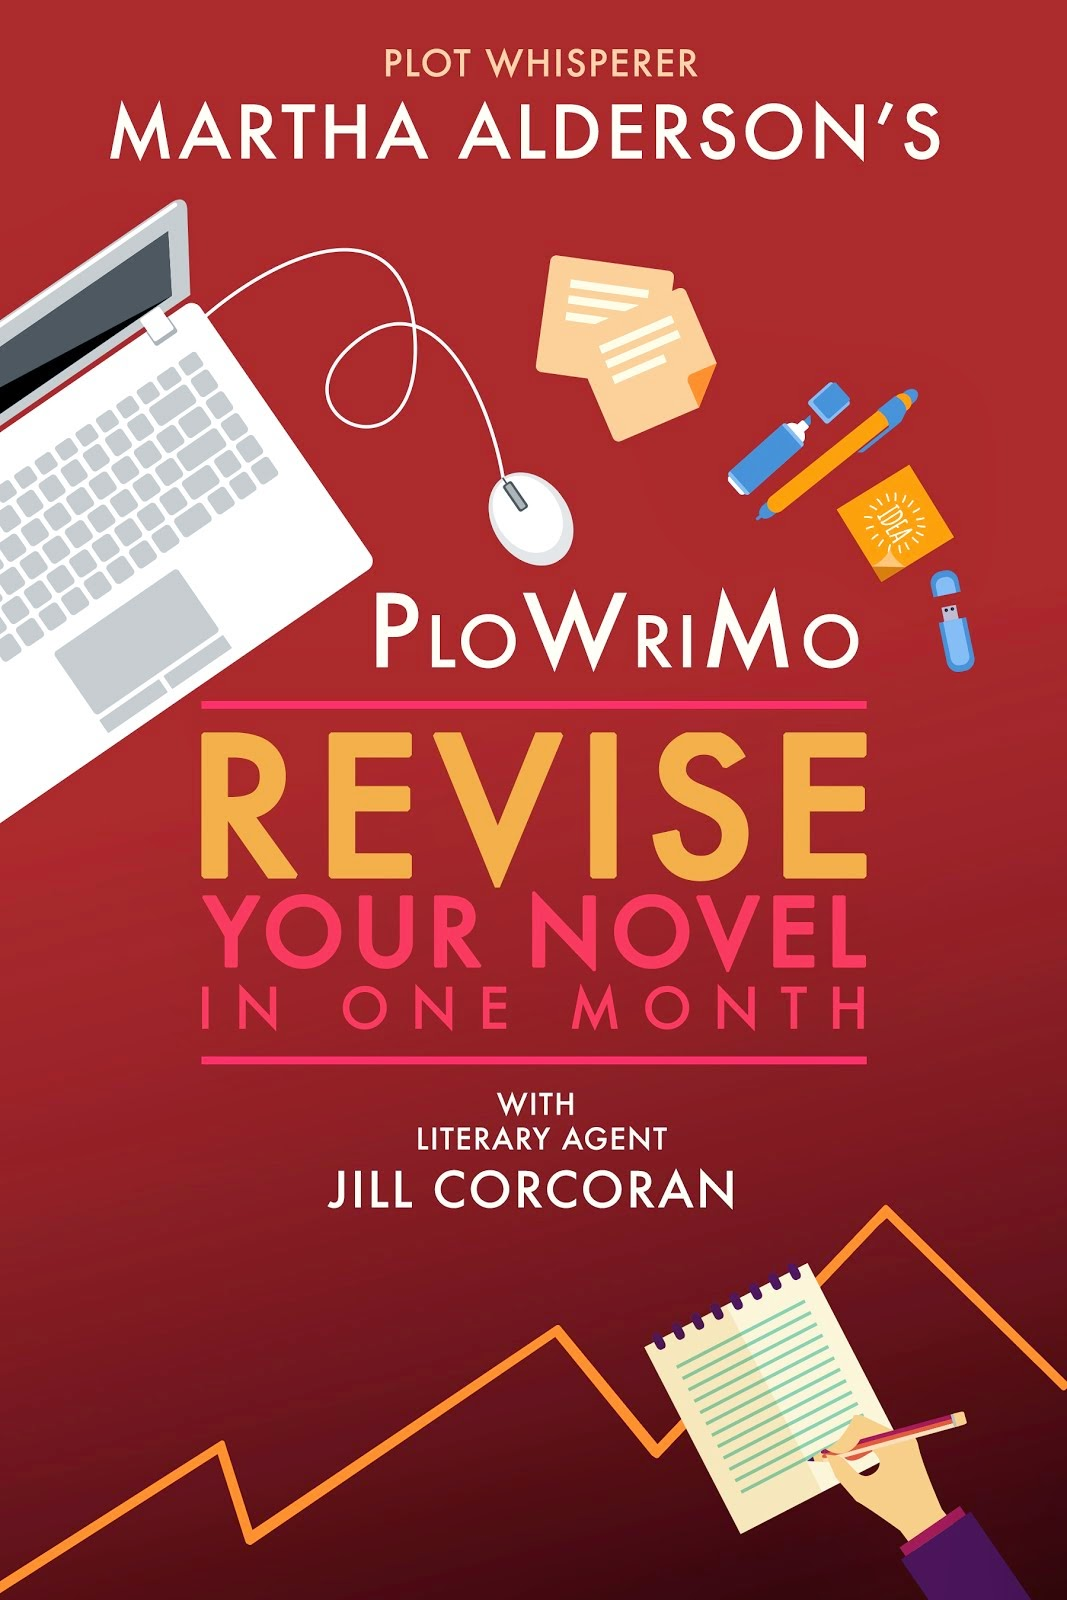 Plot Whisperer Martha Alderson's PlotWriMo: Revise Your Novel in a Month